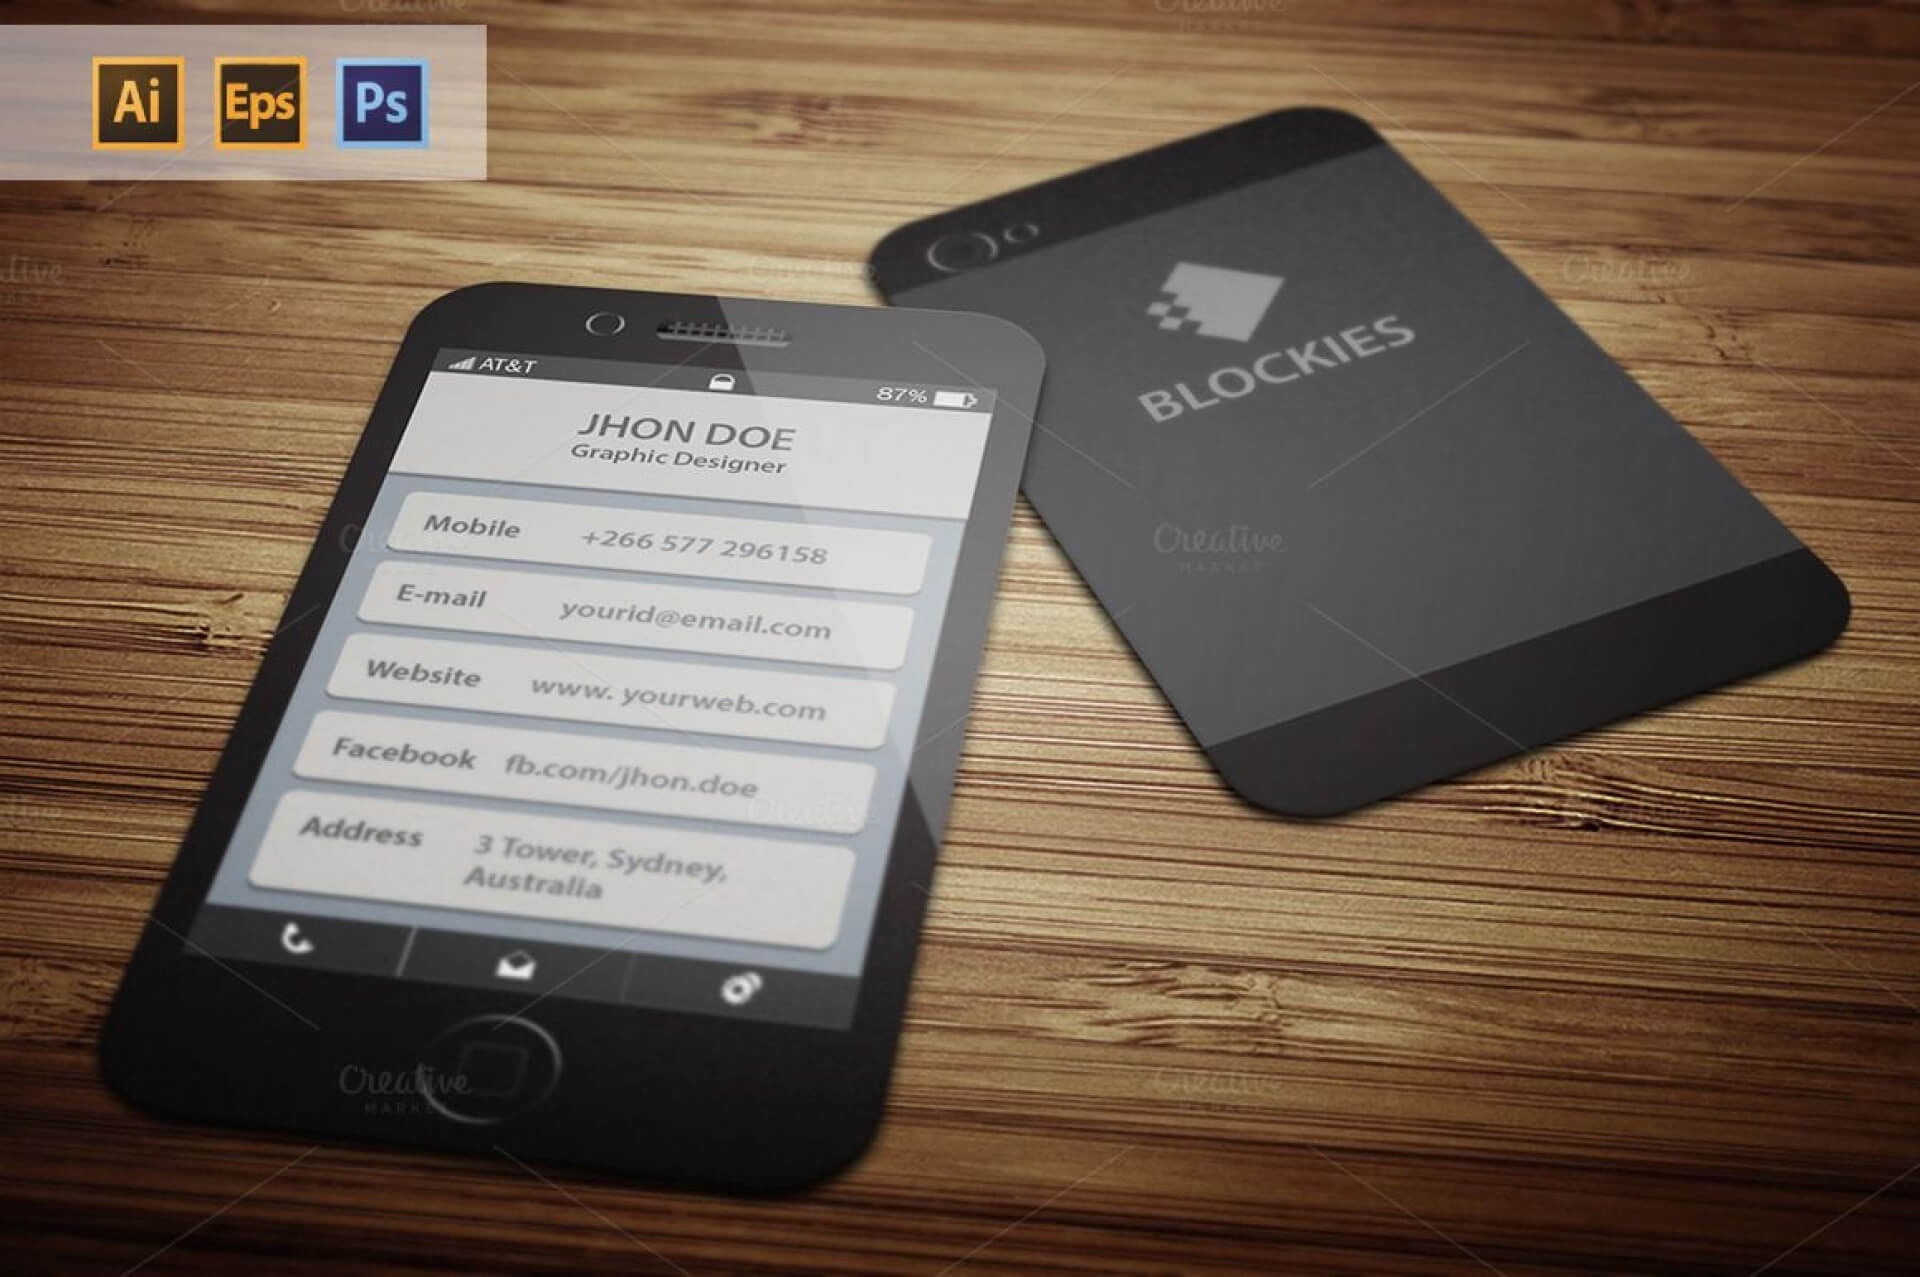 012 Iphone Business Card Template Archaicawful Ideas Pages in Iphone Business Card Template